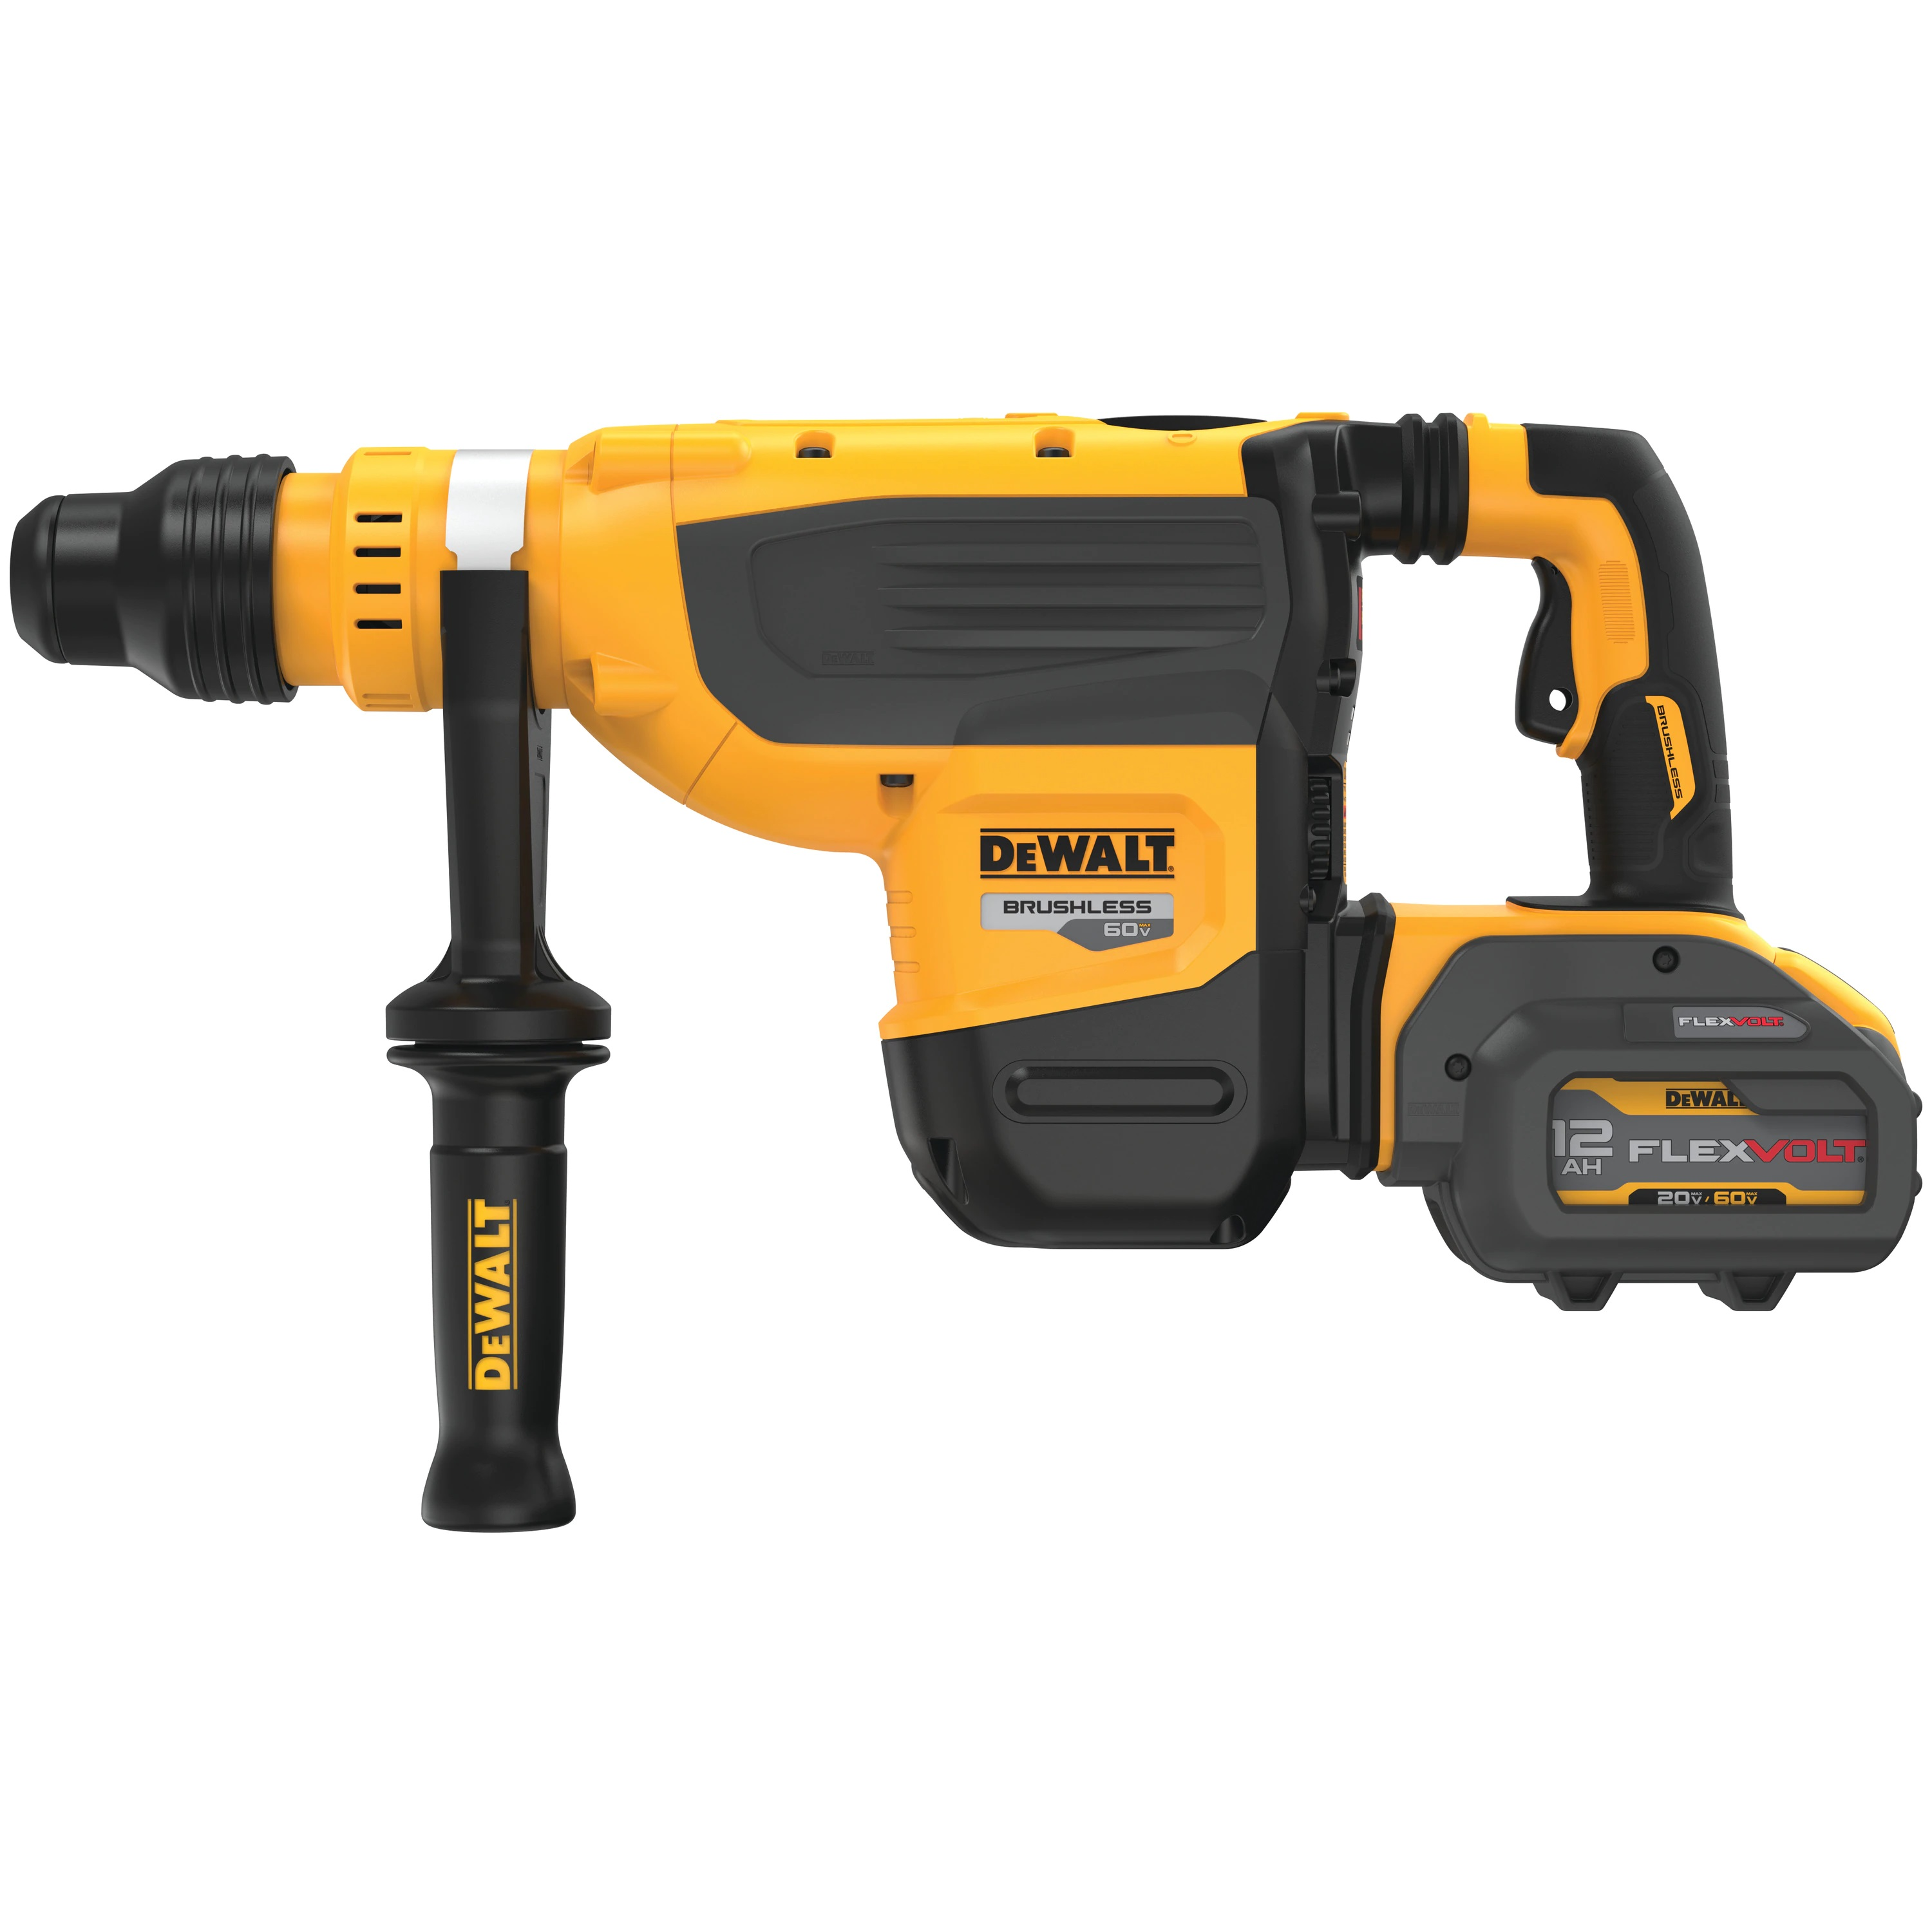 Hammer Drill - 60V MAX* 1-7/8 IN. Brushless Cordless SDS Max (TOOL ONLY) - Rotary & Demolition Hammer Drills